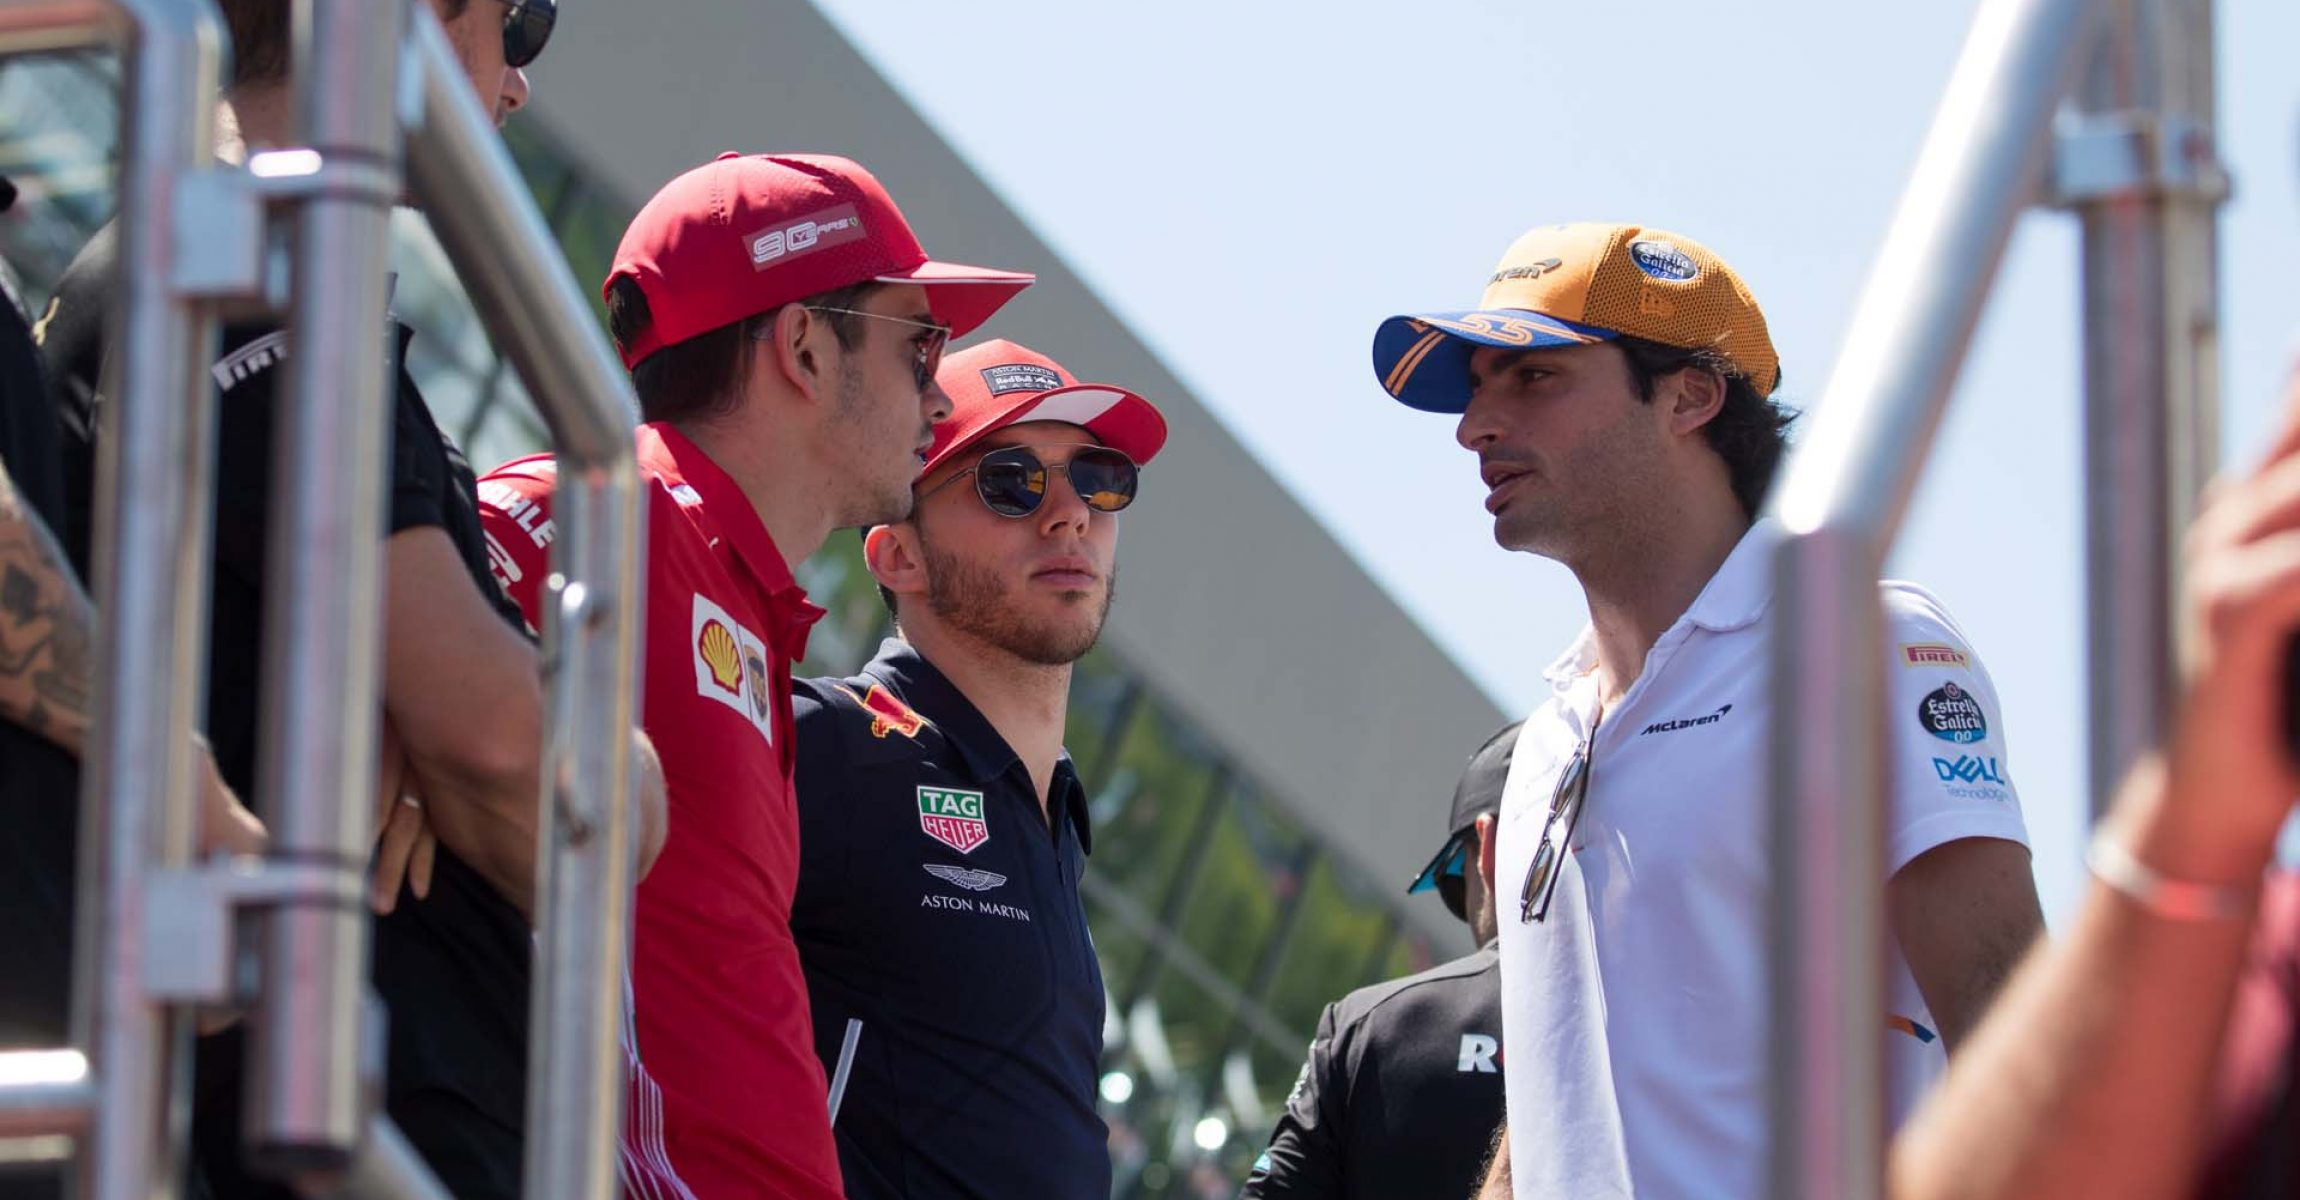 SPIELBERG,AUSTRIA,30.JUN.19 - MOTORSPORTS, FORMULA 1 - Grand Prix of Austria, Red Bull Ring. Image shows Romain Grosjean (FRA/ Haas), Charles Leclerc (MON/ Ferrari), Pierre Gasly (FRA/ Red Bull Racing) and Carlos Sainz Jr. (ESP/ McLaren). Photo: GEPA pictures/ Daniel Goetzhaber - For editorial use only. Image is free of charge.